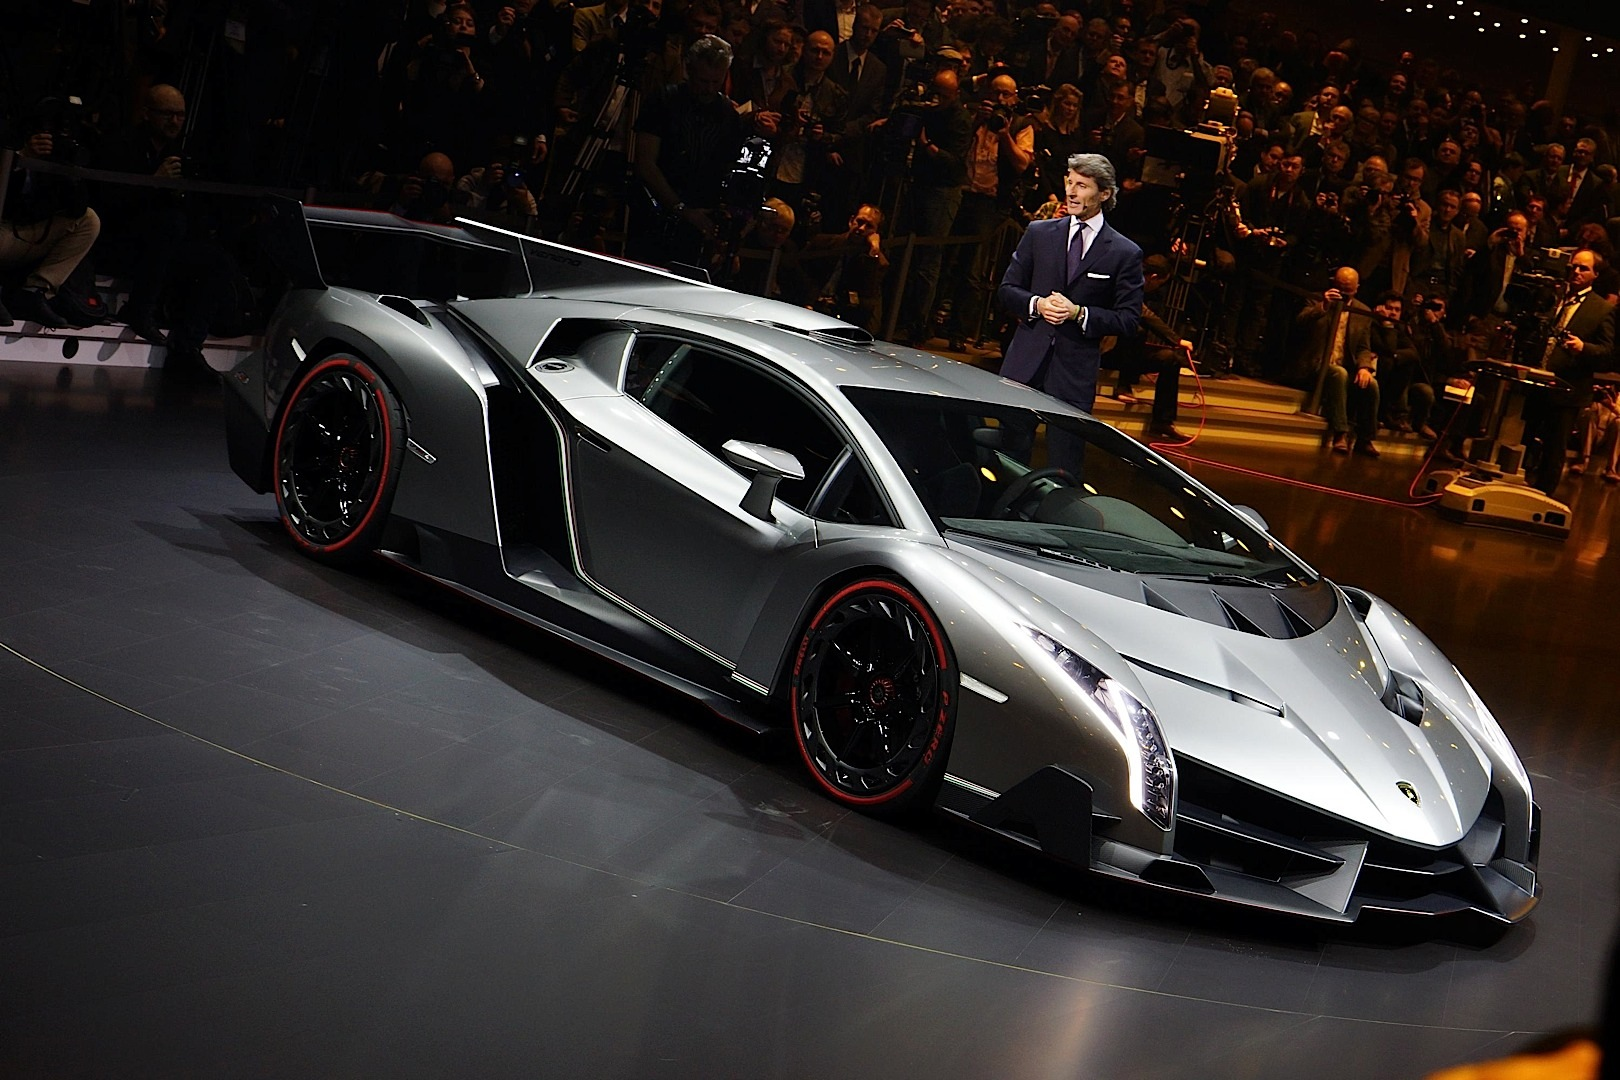 Lamborghini Veneno For Sale >> Lamborghini Veneno Named World's Ugliest Car - autoevolution